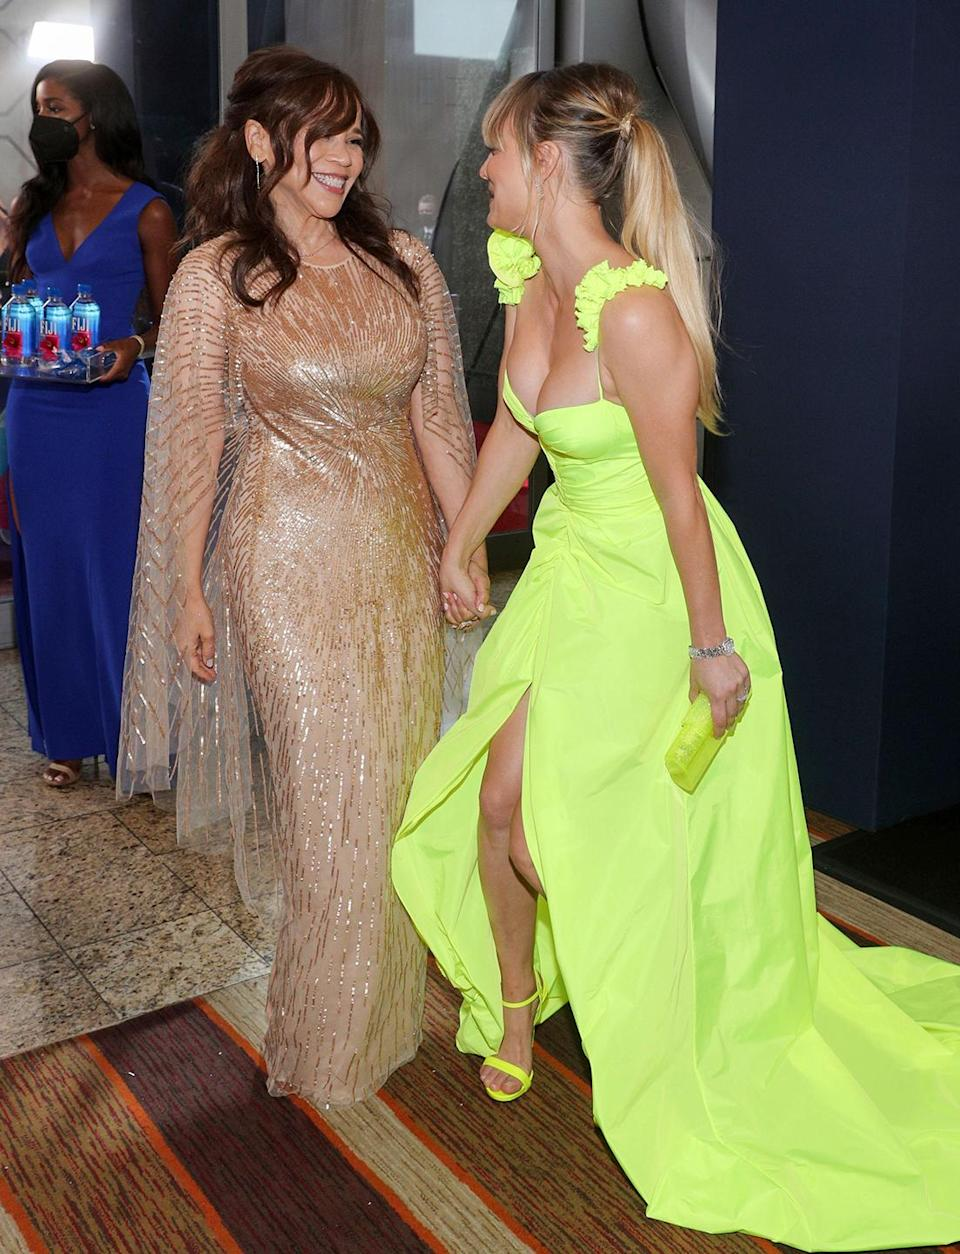 <p>Now <em>that's</em> an upgrade from the costume skirt suits! <em>The Flight Attendant</em> costars (and nominees) Rosie Perez and Kaley Cuoco giggled while making their way into the big event, holding hands.</p>